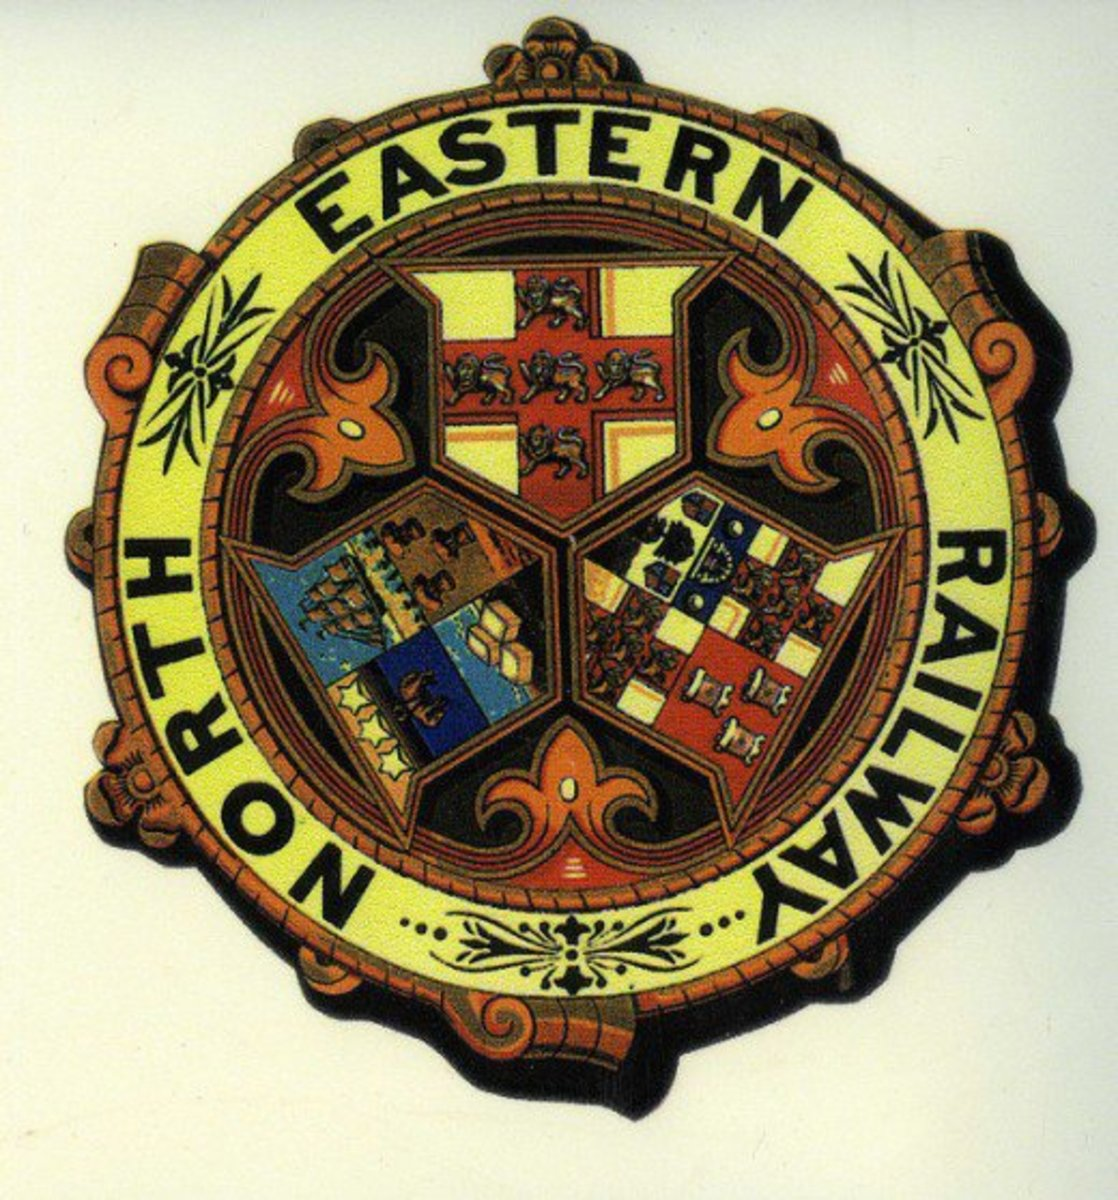 The North Eastern Railway absorbed the S&DR in 1863, the CR followed in 1865 on less favourable terms